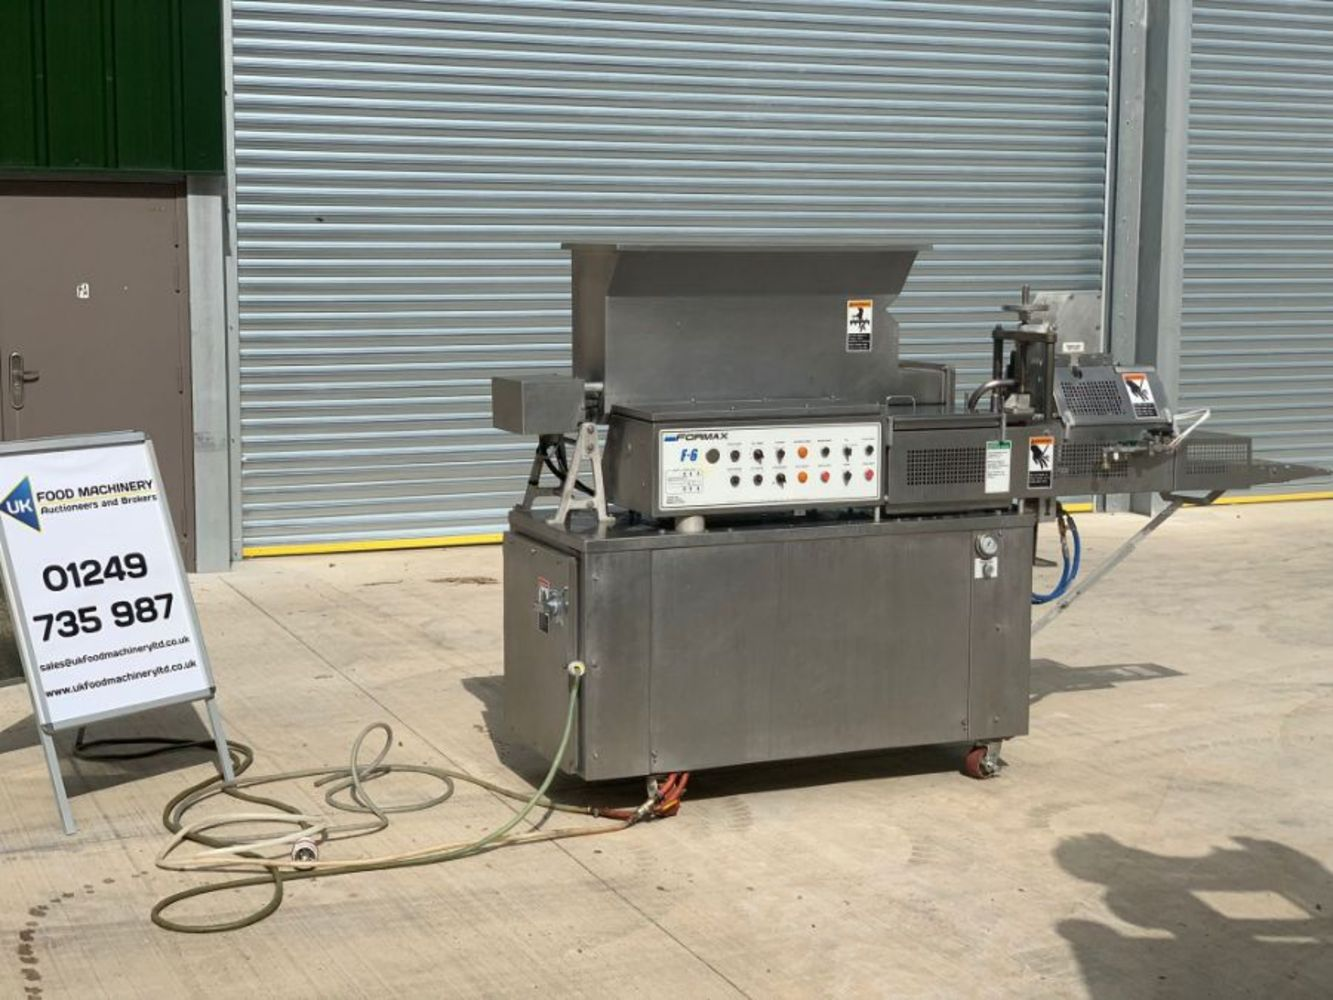 Monthly Food Machinery Auction Of High Quality Processing and Packaging Machinery